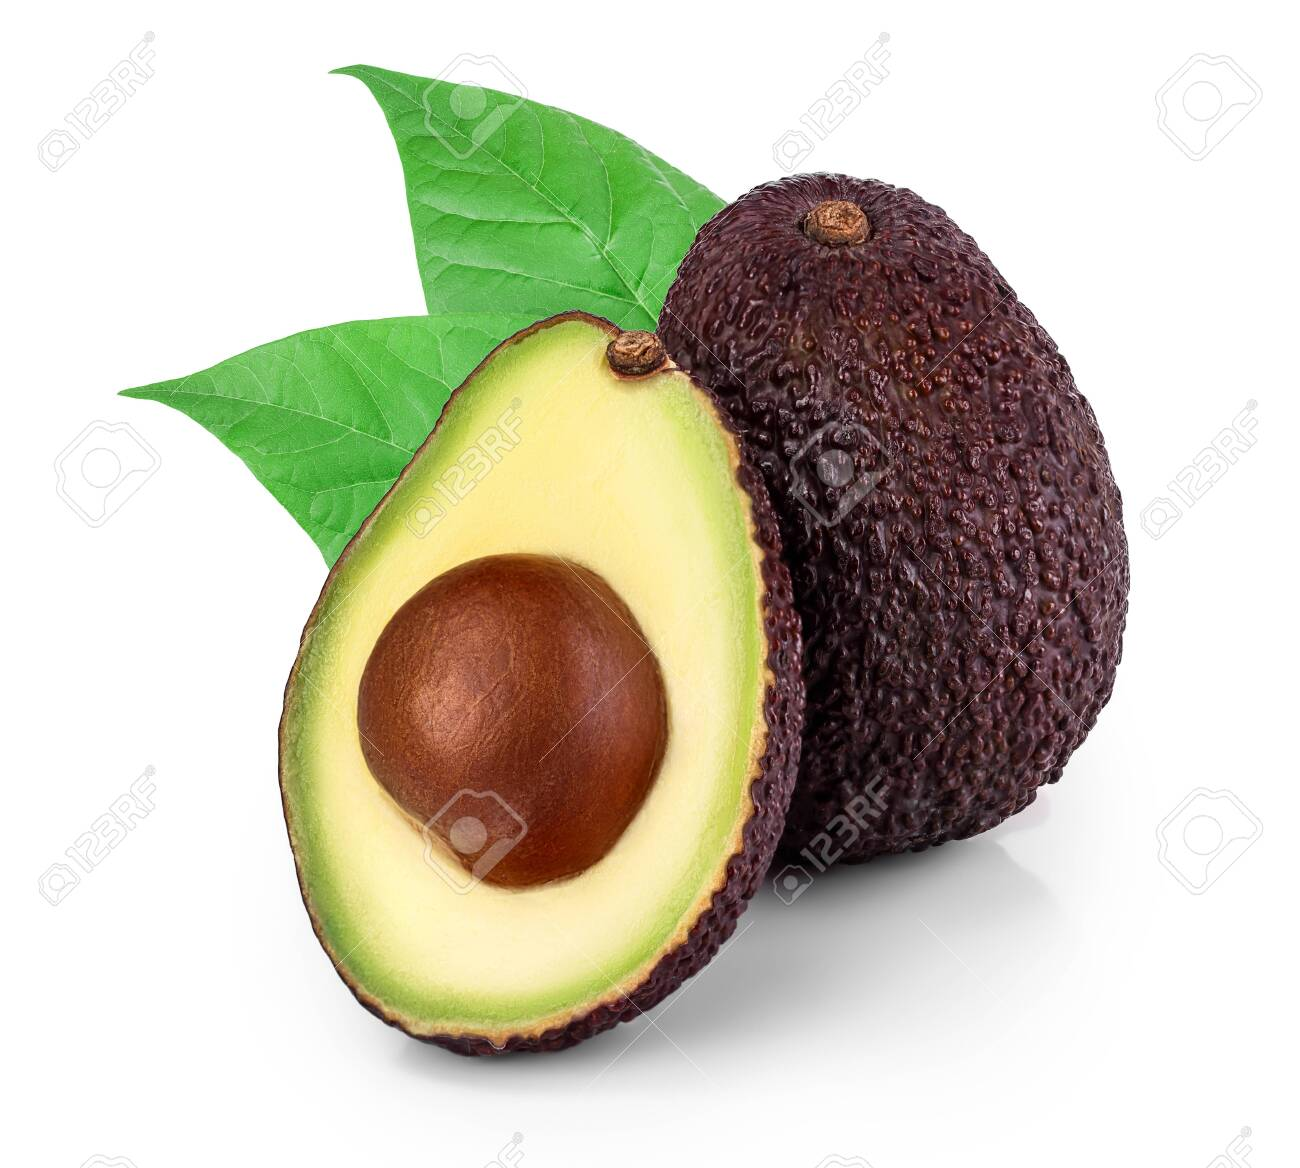 avocado and half with leaves isolated on white background - 143722033